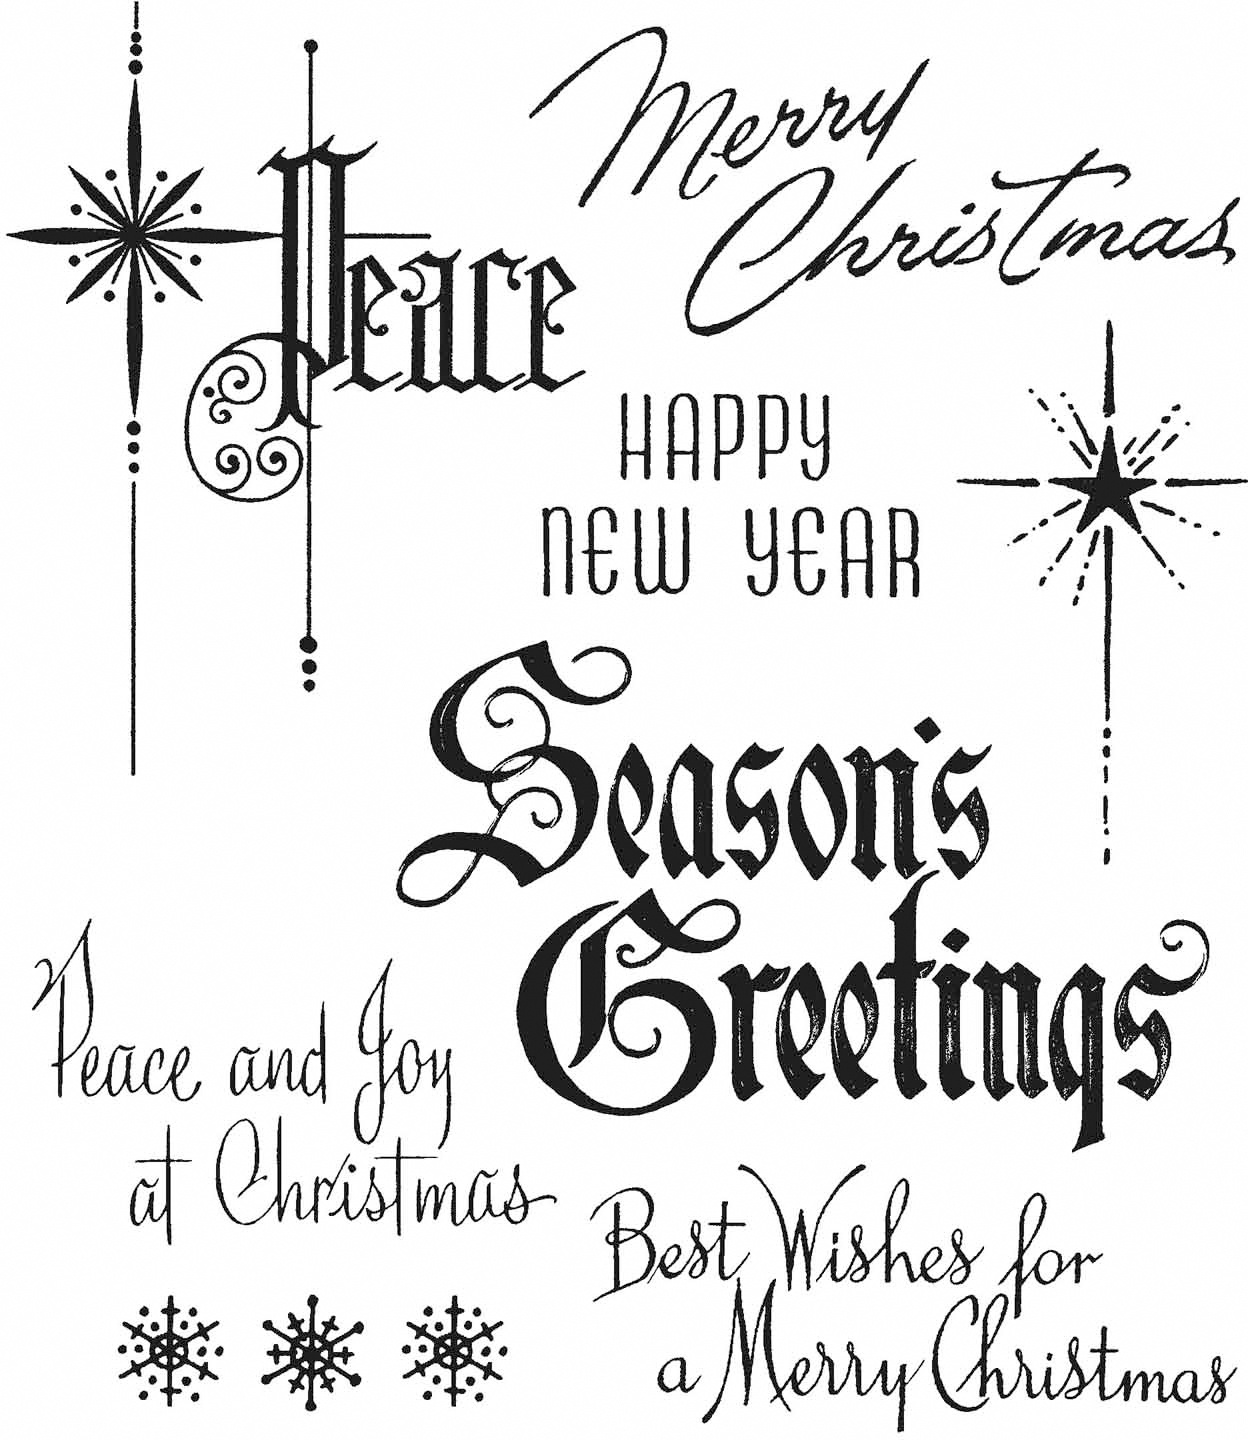 Tim Holtz Cling Stamps 7X8.5-Christmastime #2